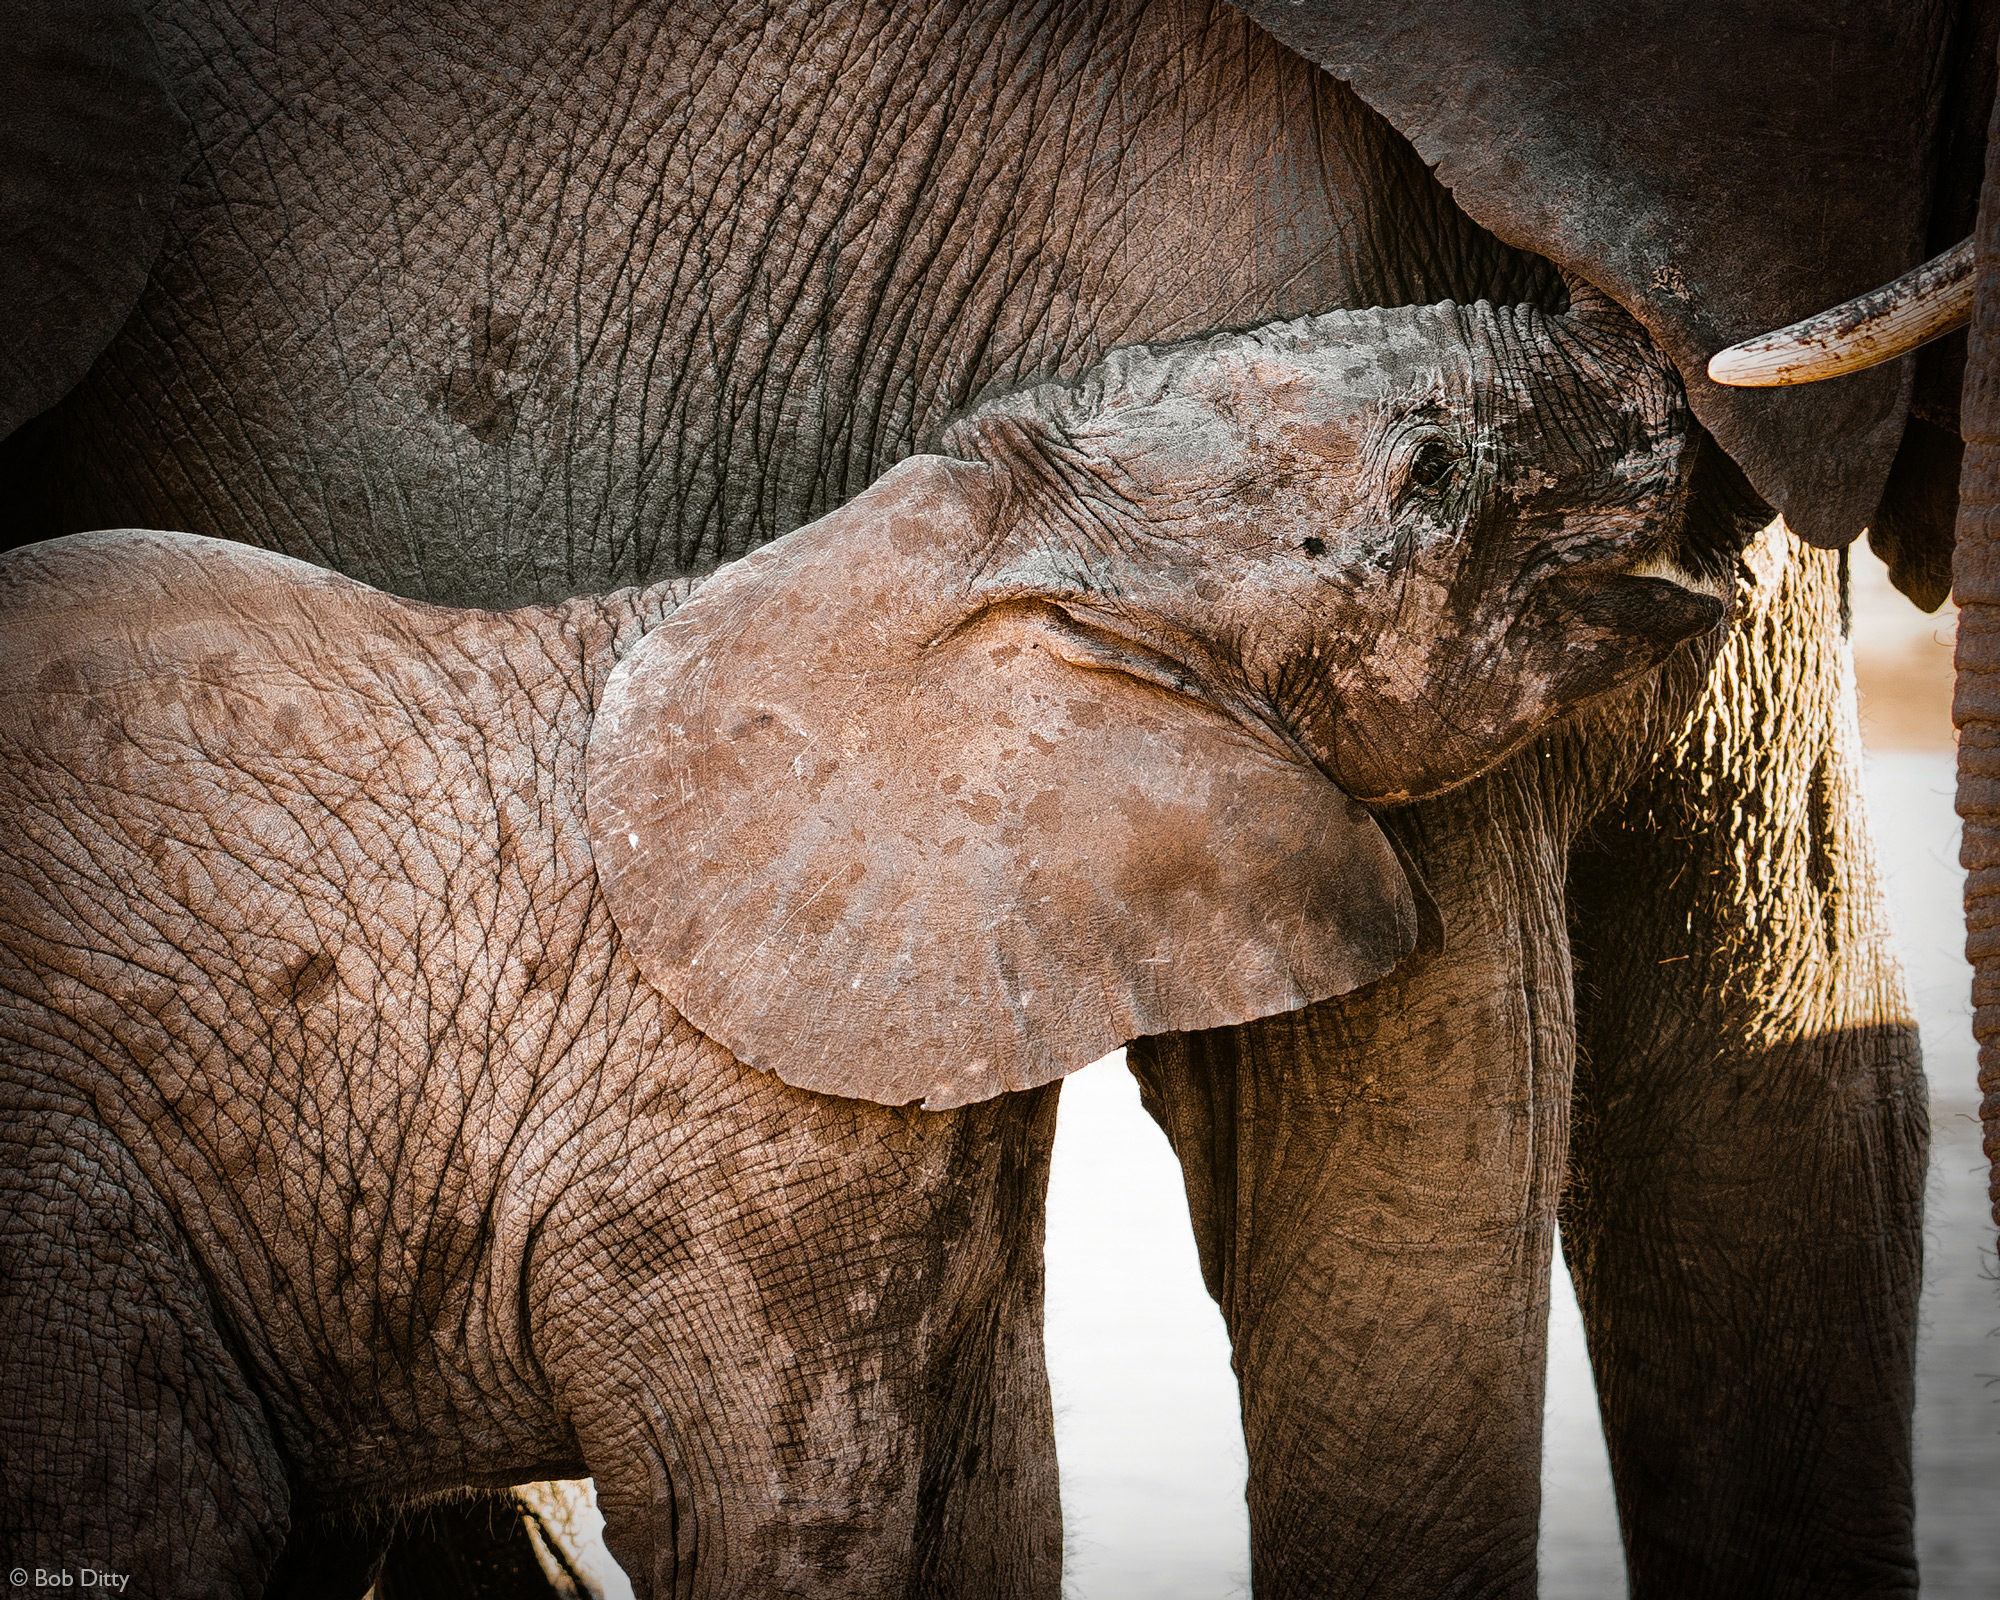 Elephant calf suckling from mother in Klaserie Private Nature Reserve, South Africa